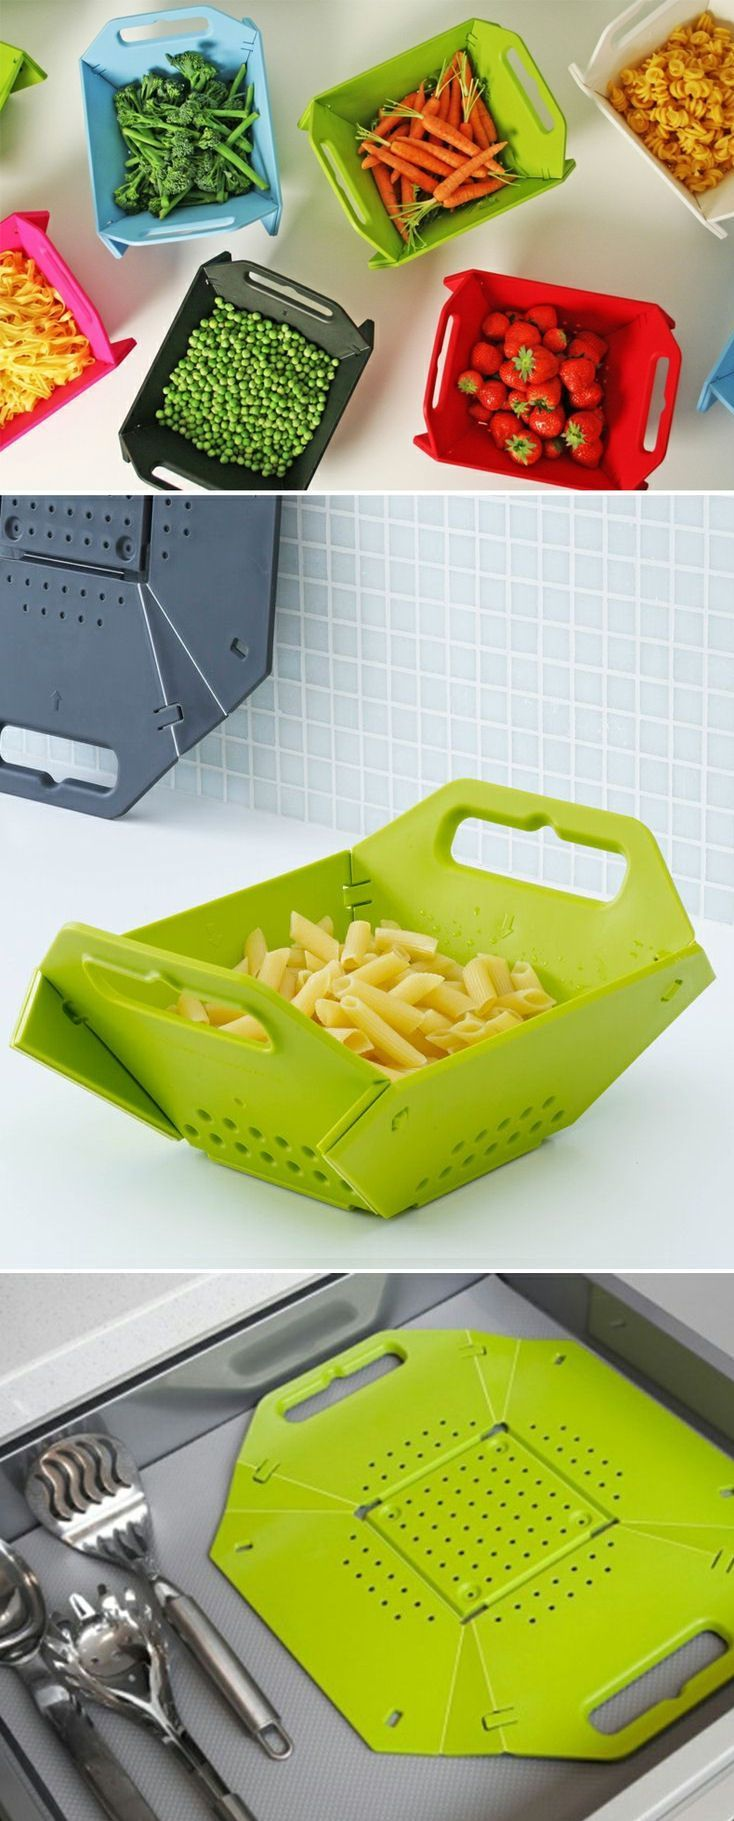 We love this Joseph Joseph Space-Saving Folding Colander that Stores Flat. They have a great range as well. Keep an eye out for them.